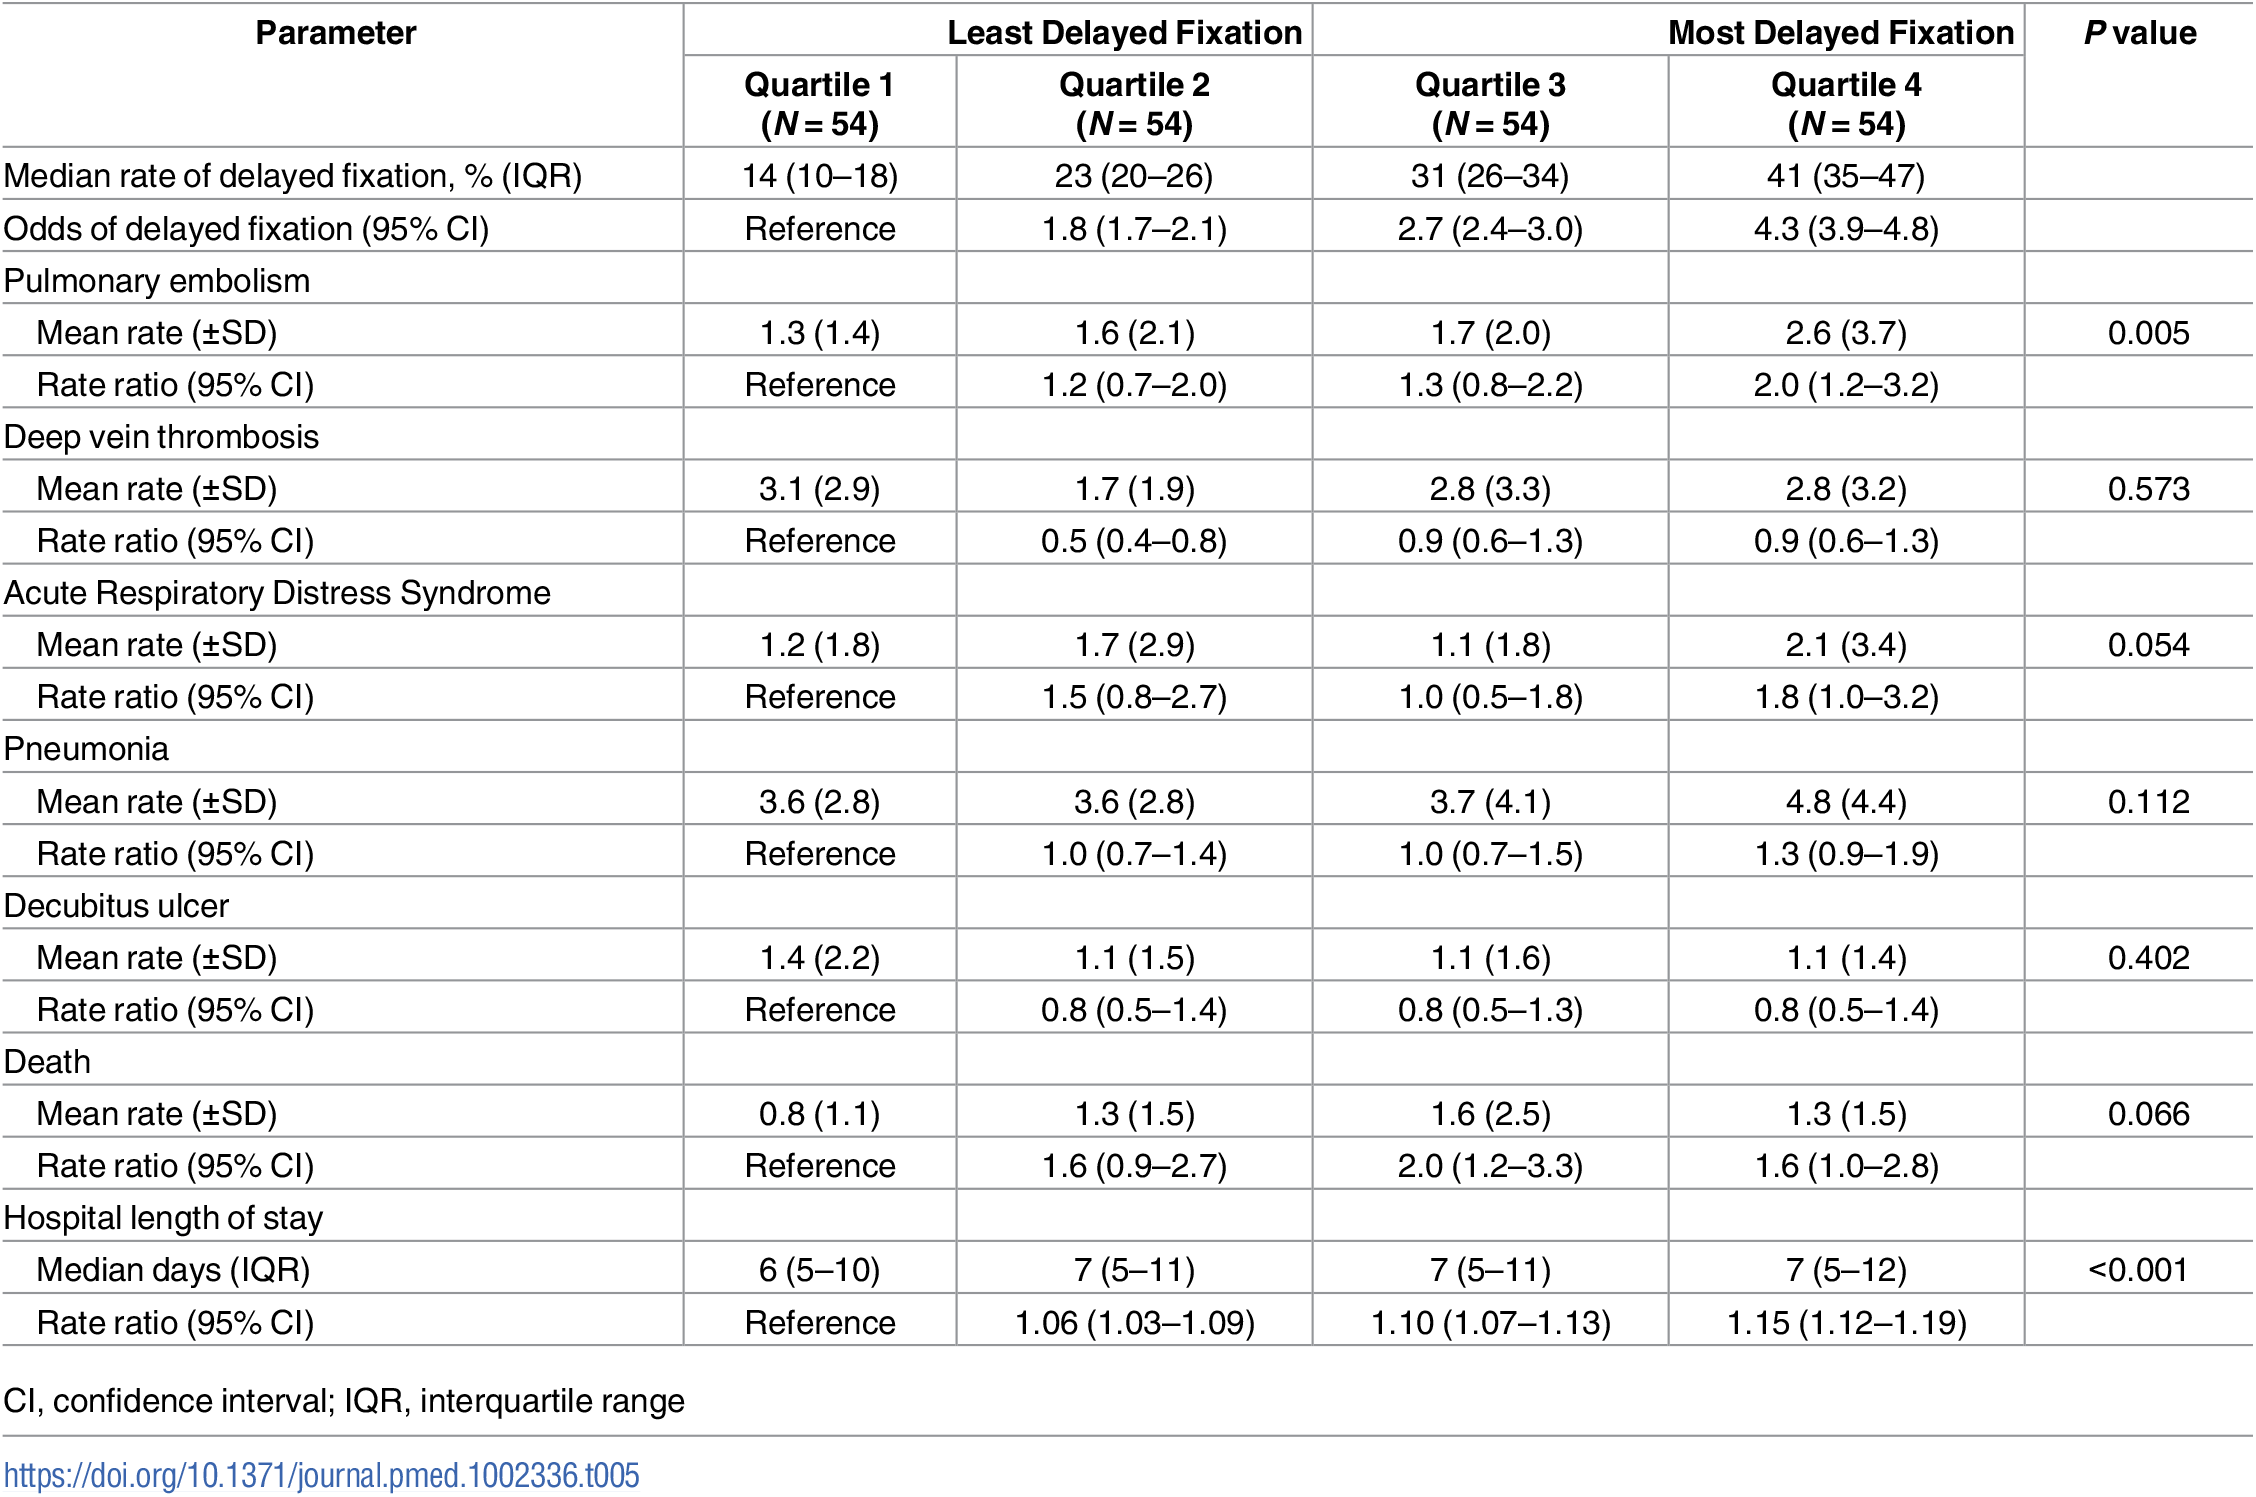 Outcomes by hospital quartile for delayed fixation.